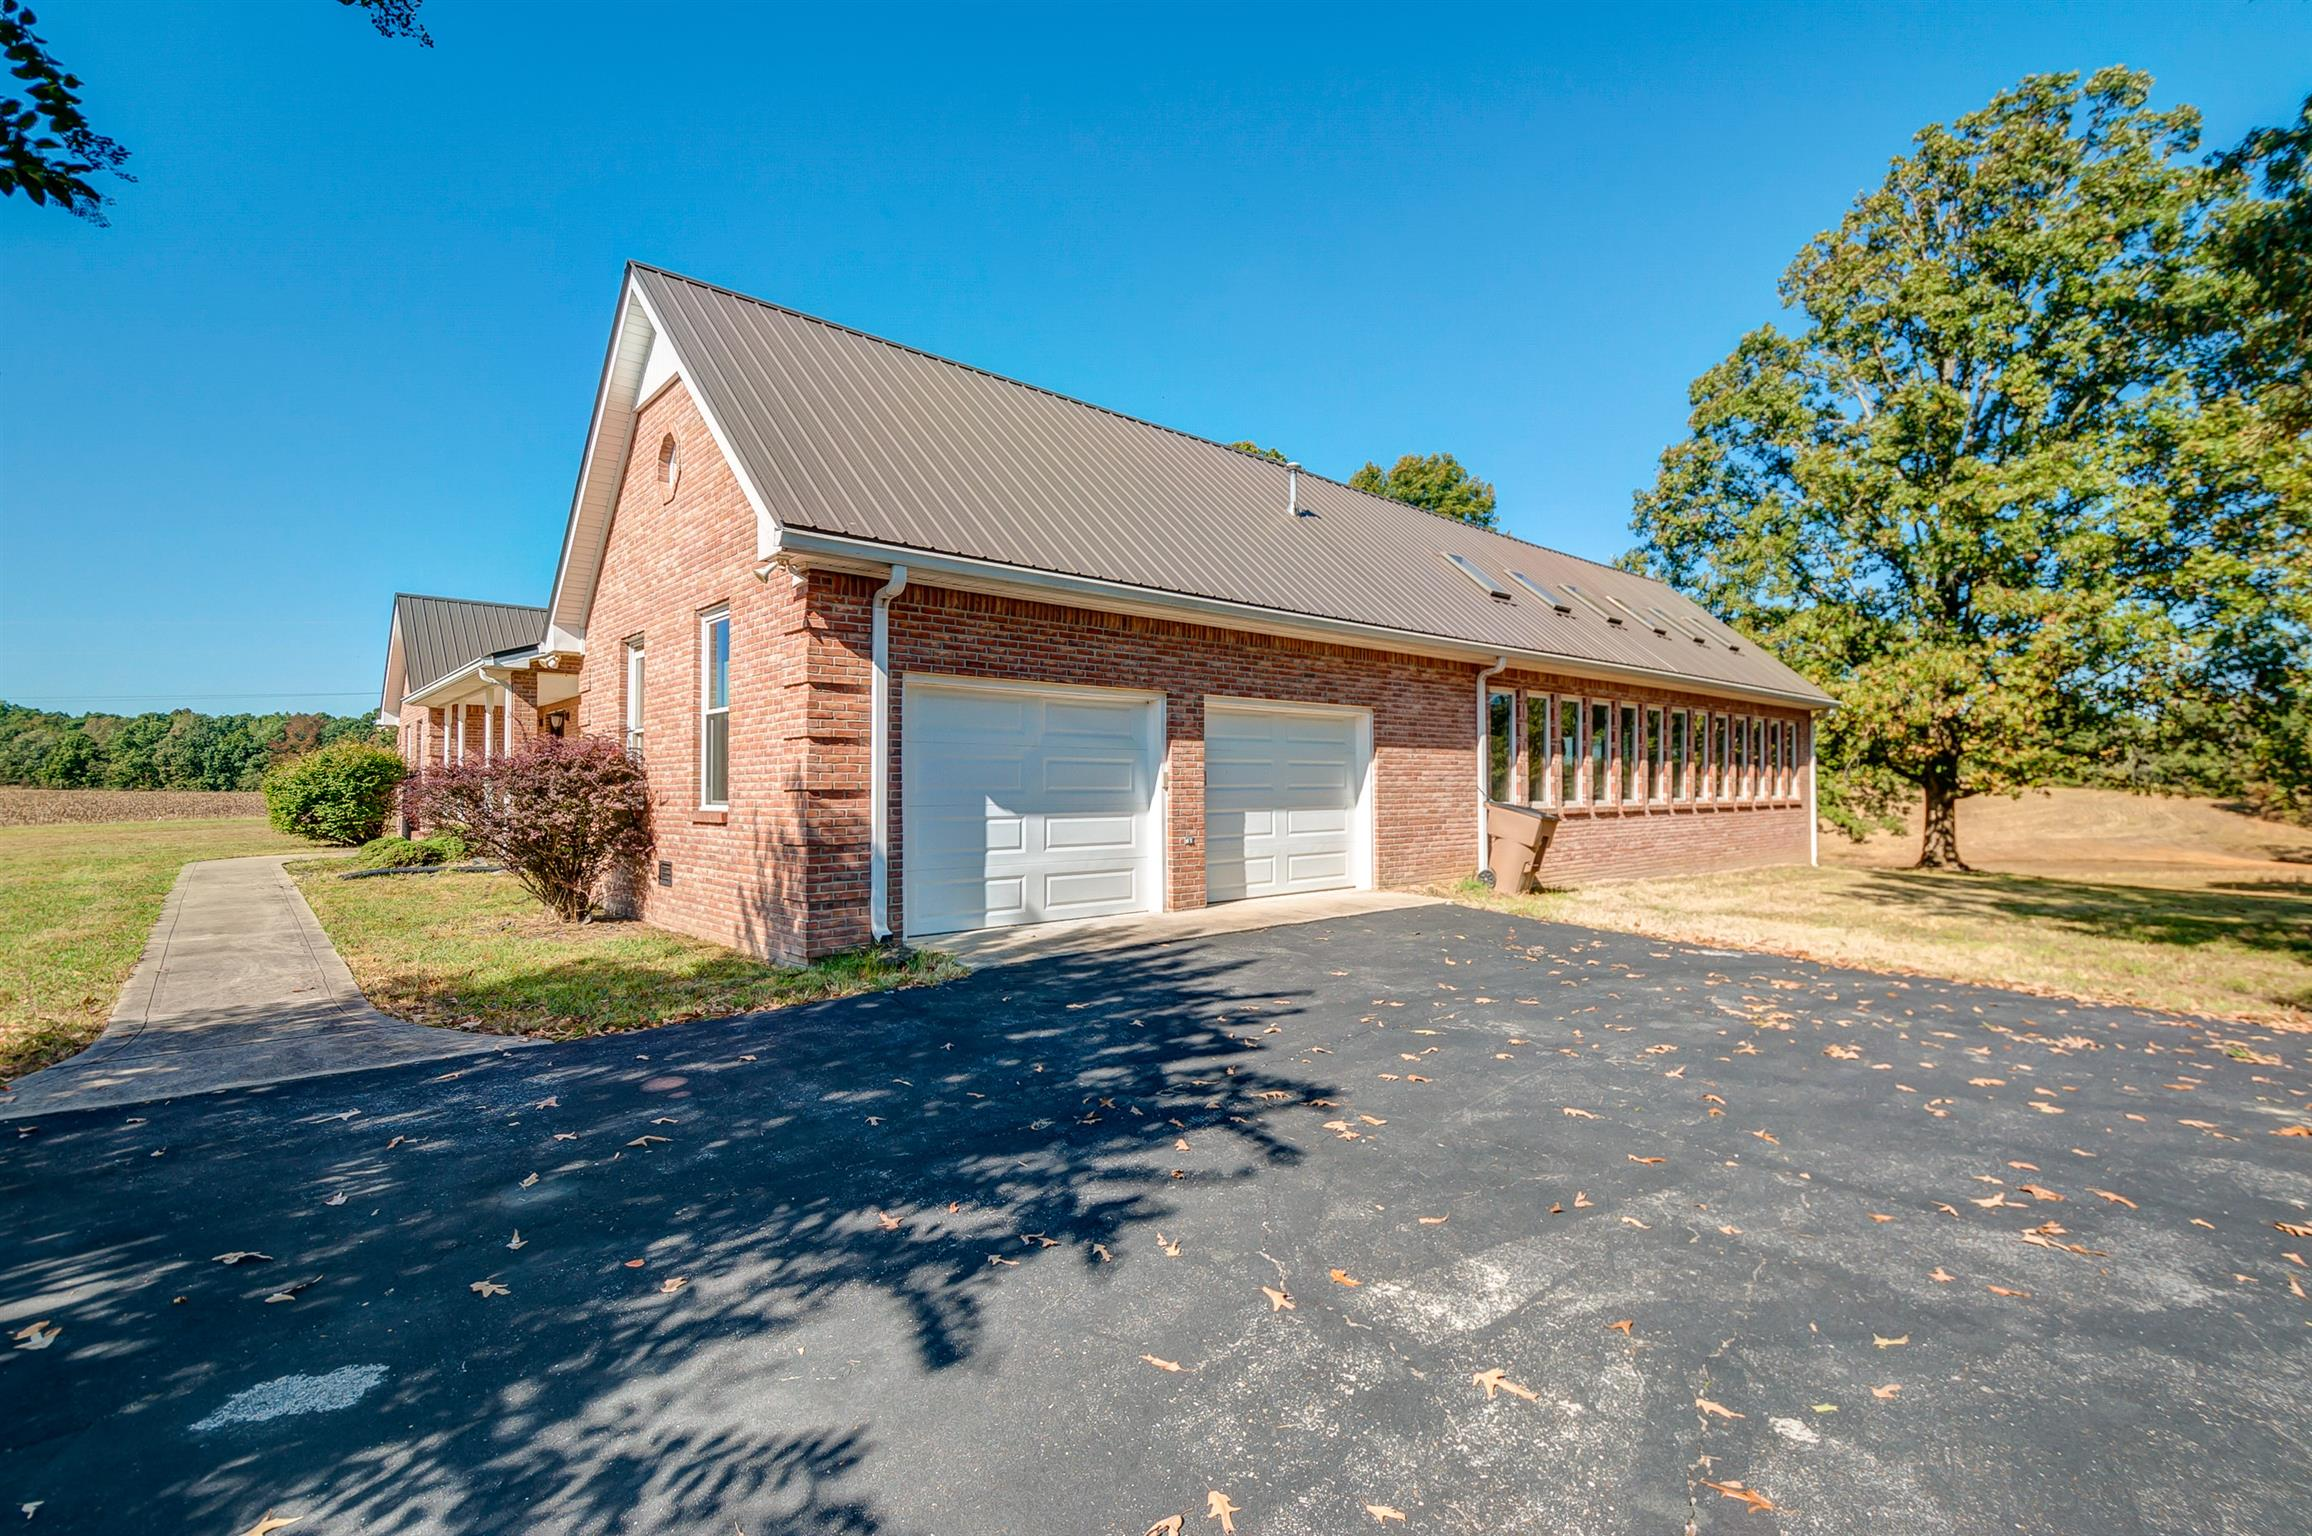 8910 Poplar Grove Rd, MC EWEN, TN 37101 - MC EWEN, TN real estate listing